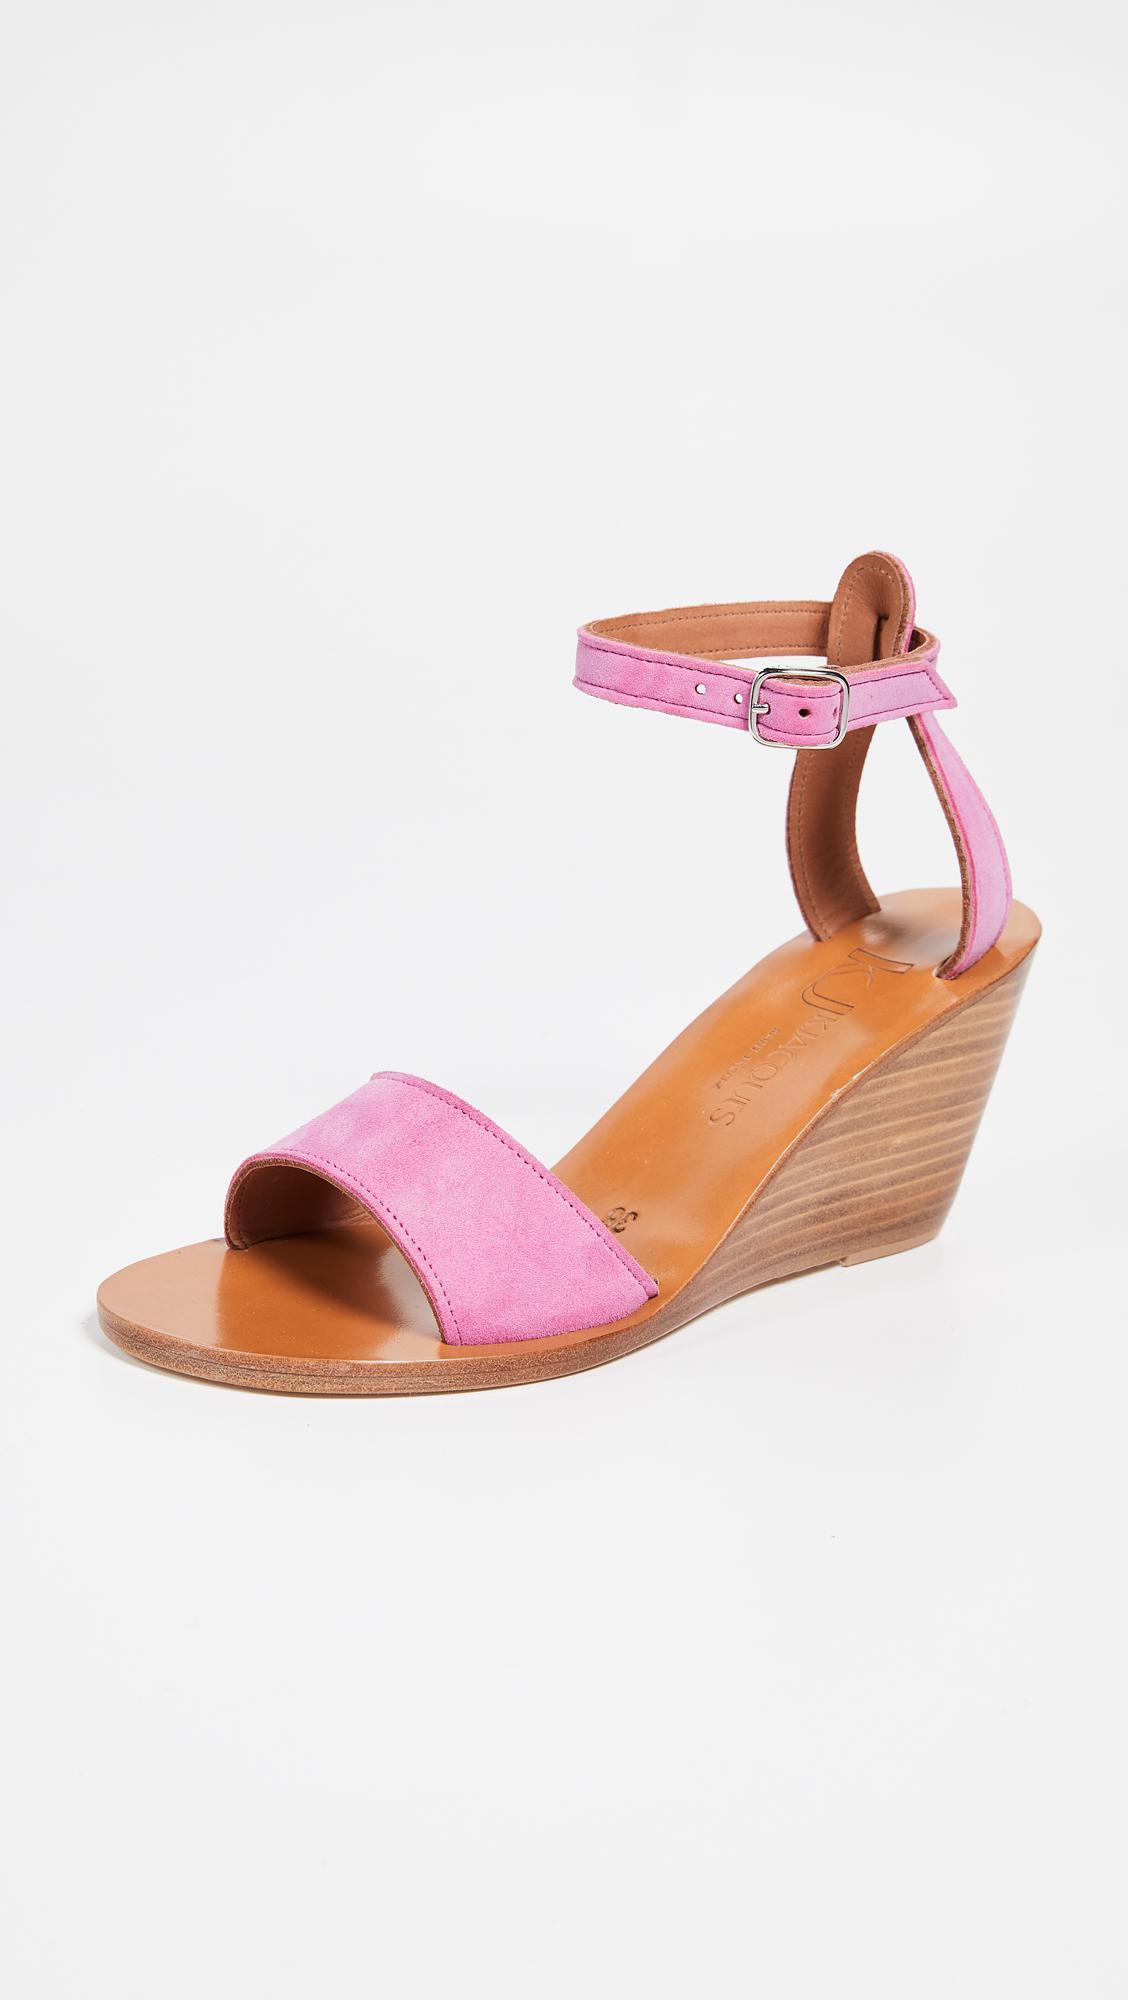 9d6b6142ffe2 Lyst - K. Jacques Sardaigne Wedge Sandals in Pink